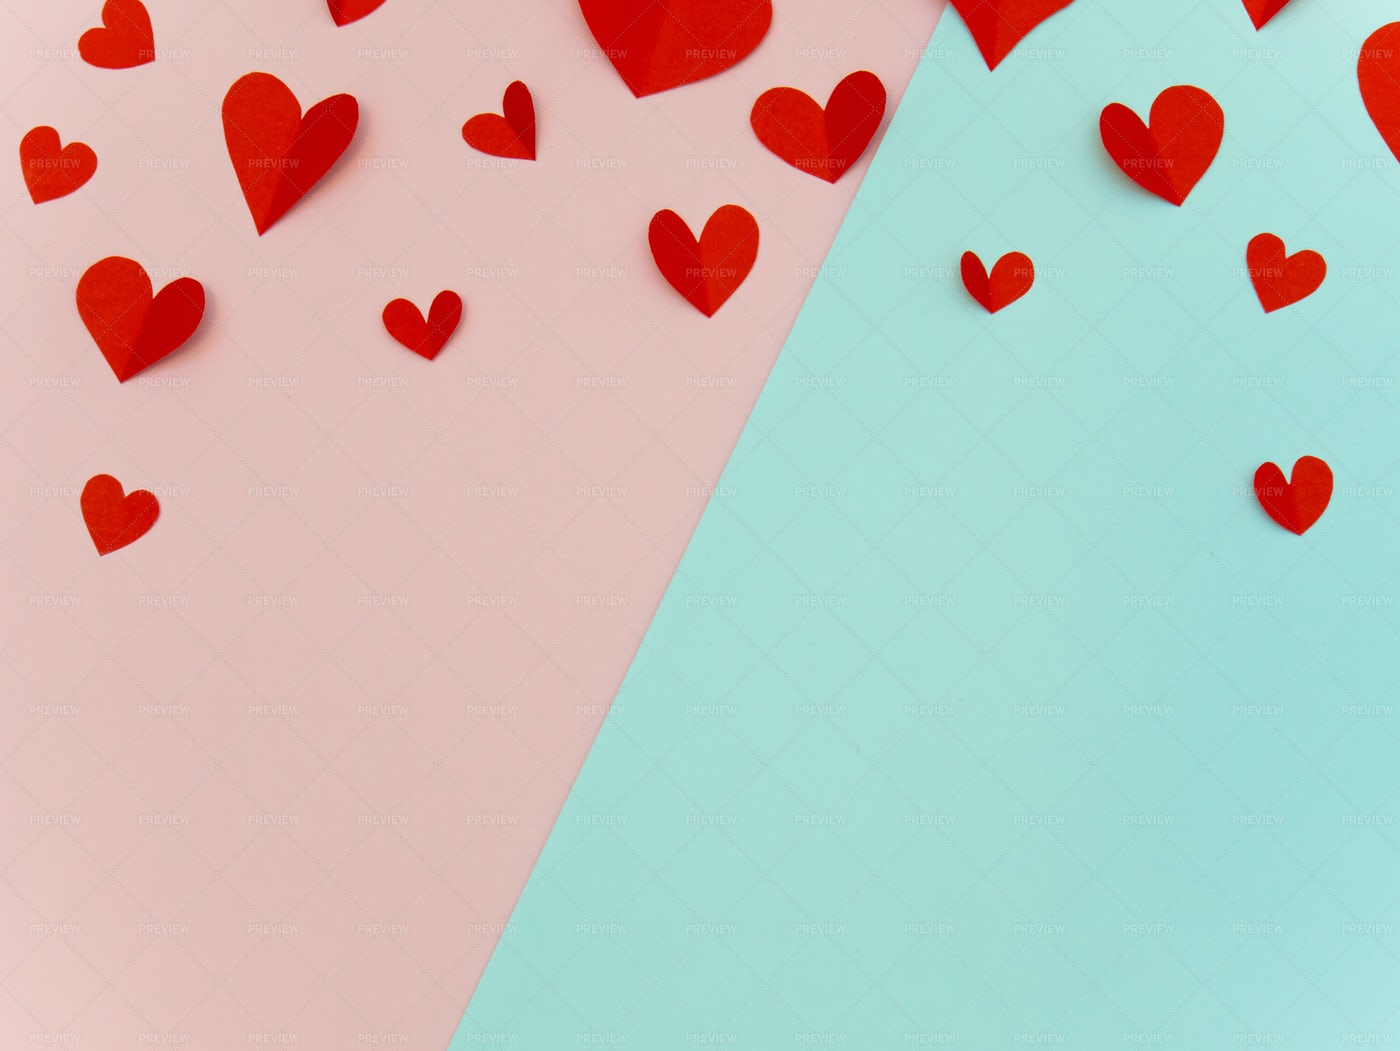 Red Paper Hearts Background: Stock Photos